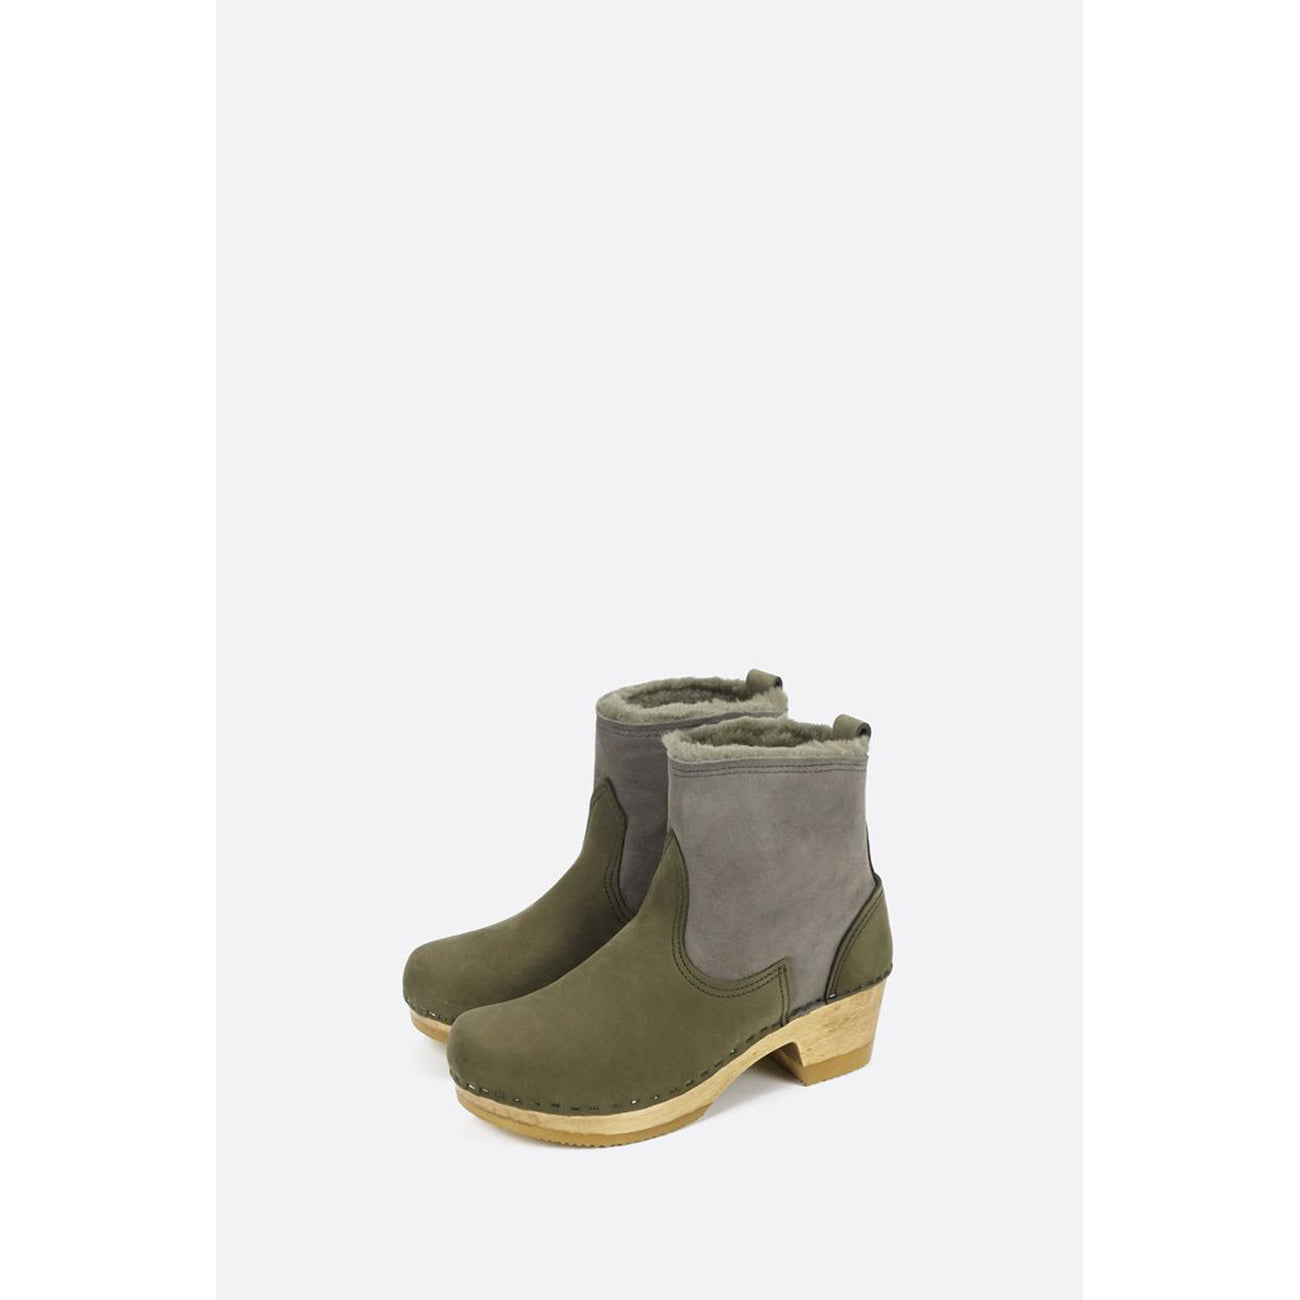 "No.6 5"" Shearling Boot on Mid Heel in Storm Suede"